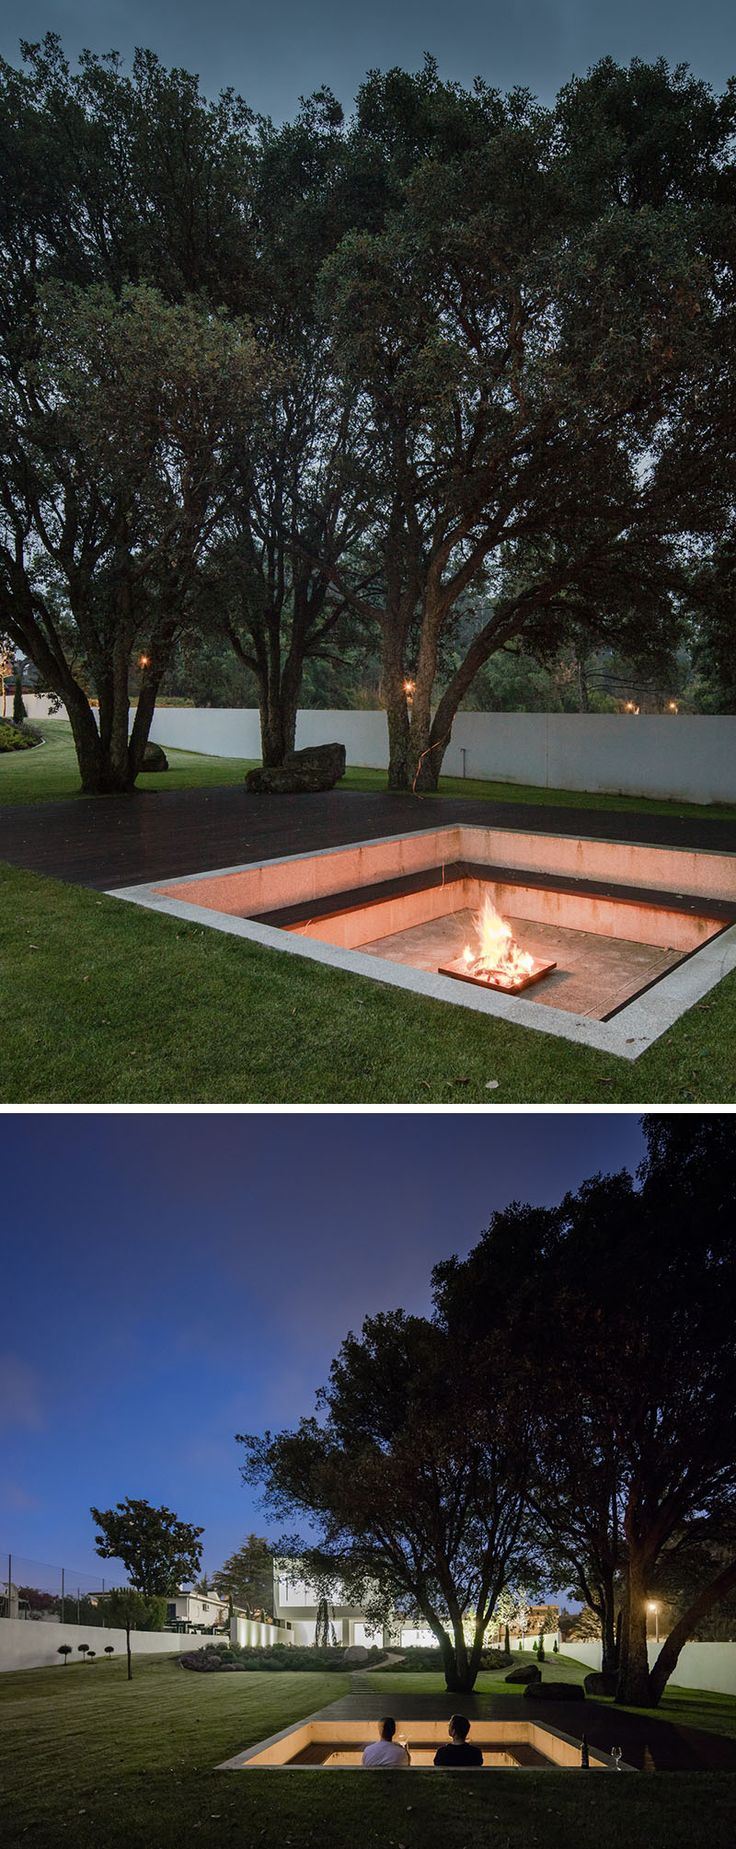 Great use of space! Sunken down into the grassy landscaped yard of this modern house, is a square lounging pit with built-in seating that wraps around the fire and allows people to lean against the wall. From the lounge, you are able to have a view of the house, and at night it's lit up, highlighting the design of the house. #FirePit #Landscaping #Backyard #OutdoorLounge #SunkenFirePit